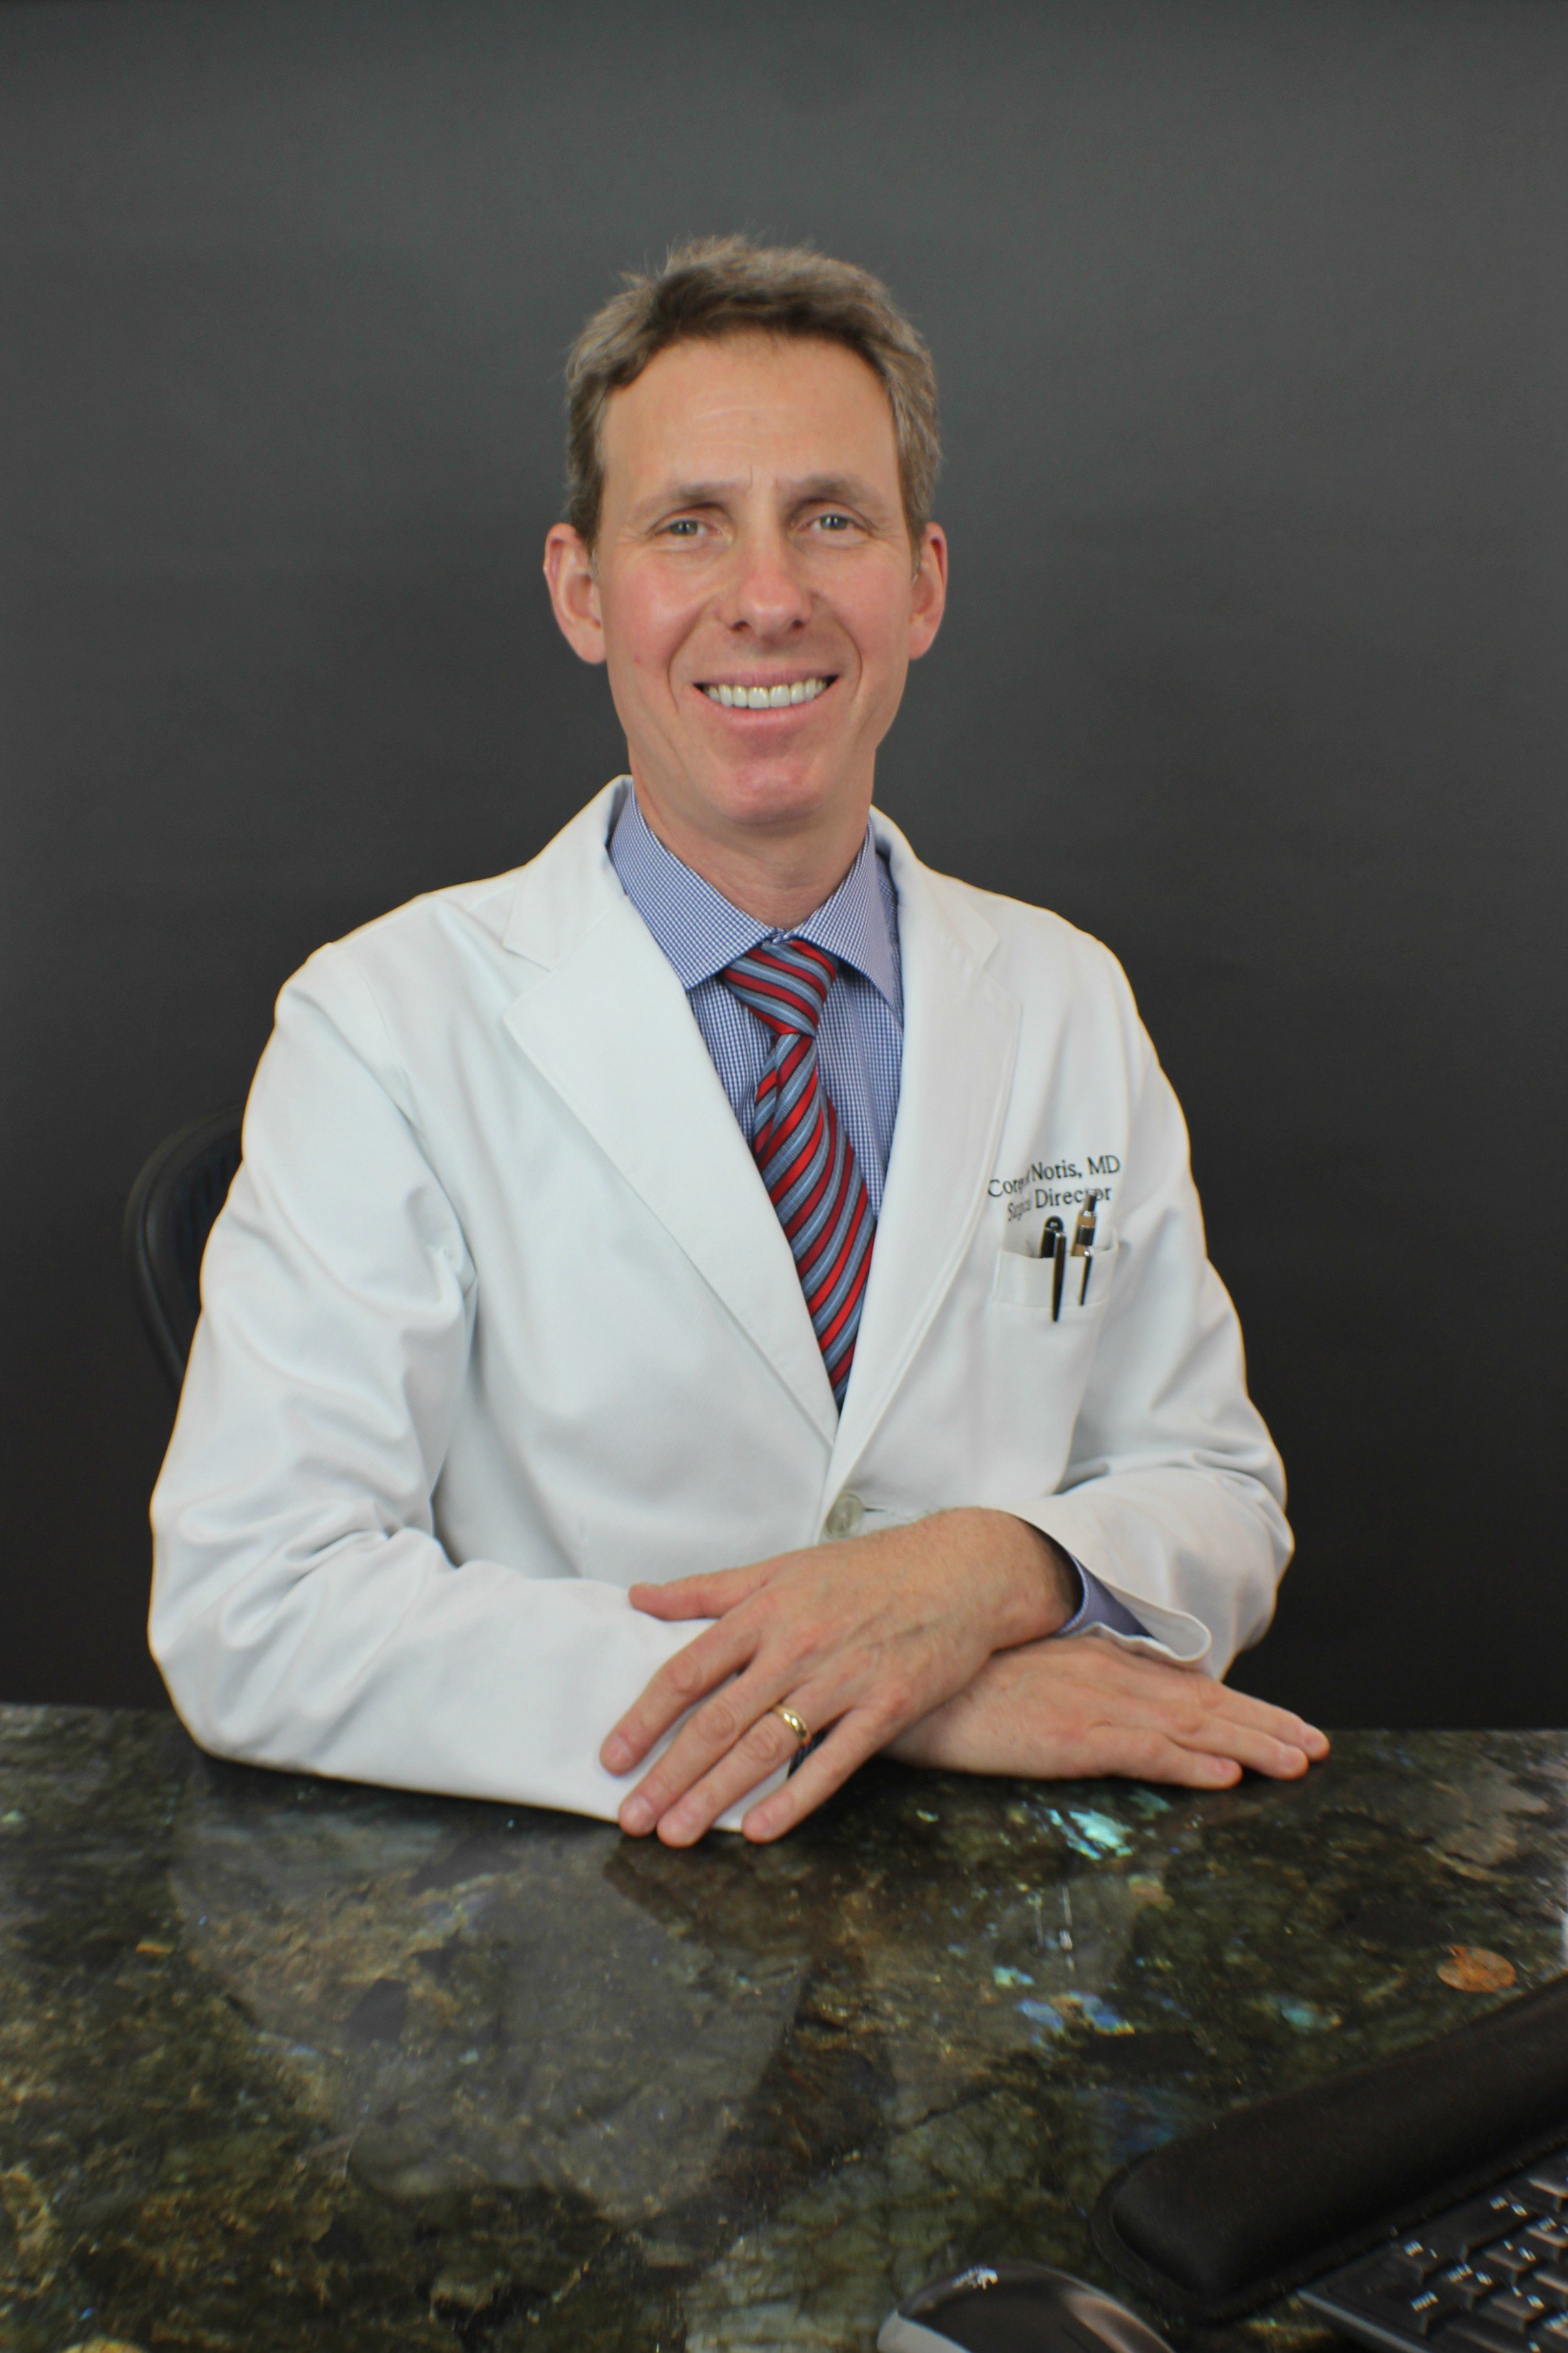 Picture of Corey M. Notis MD